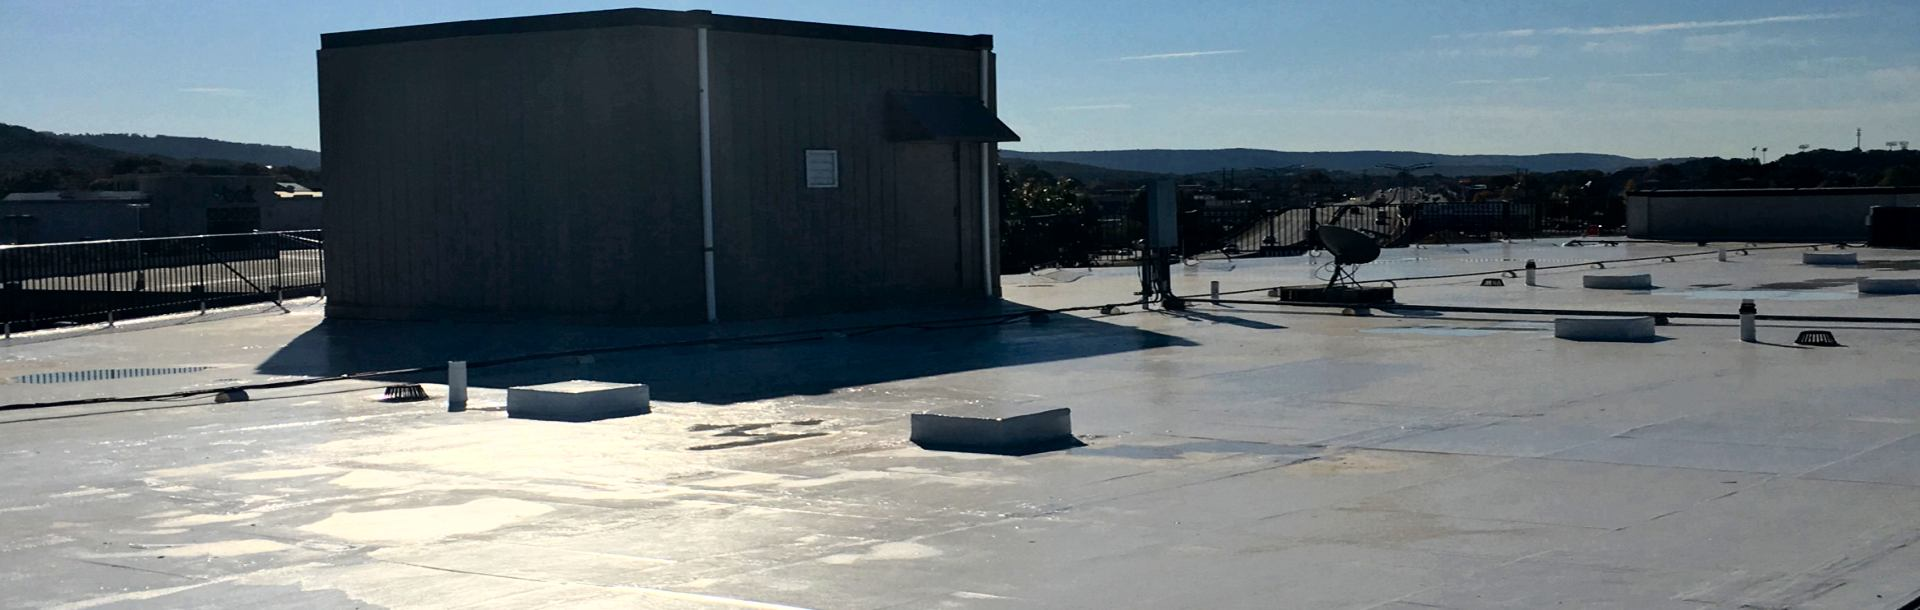 Industrial / Commercial Roofing and General Contracting